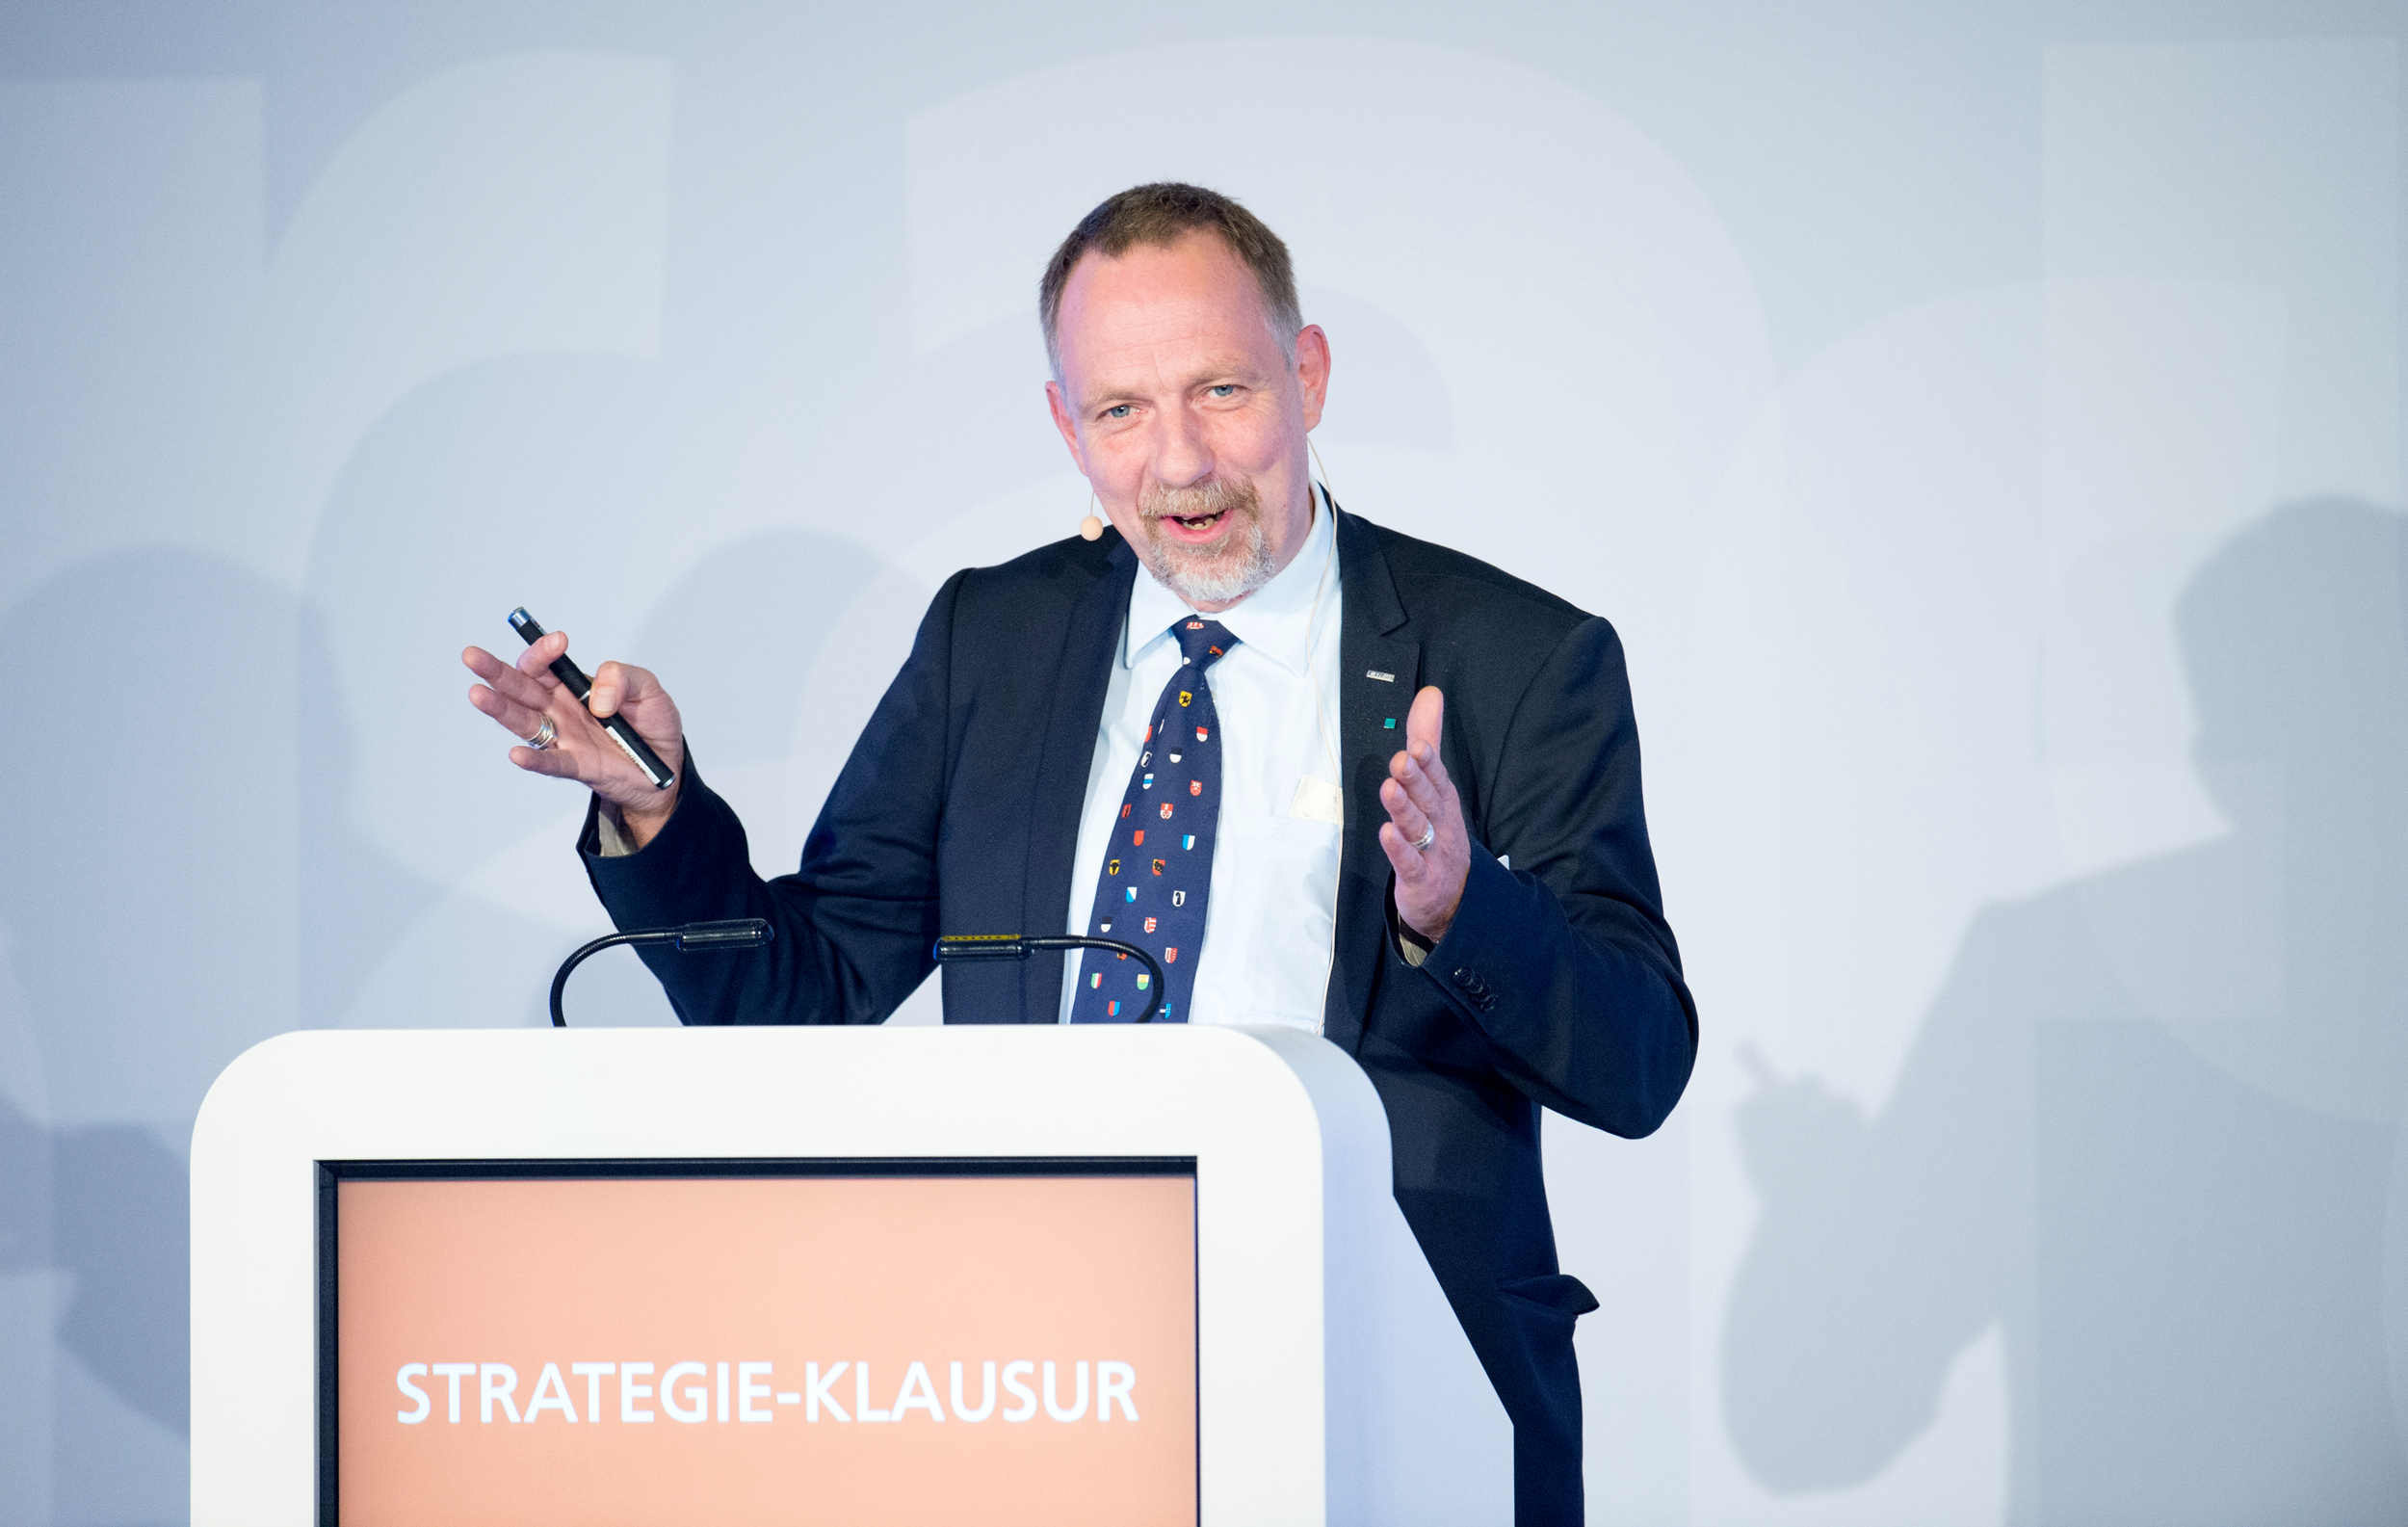 Strategie-Klausur-Business